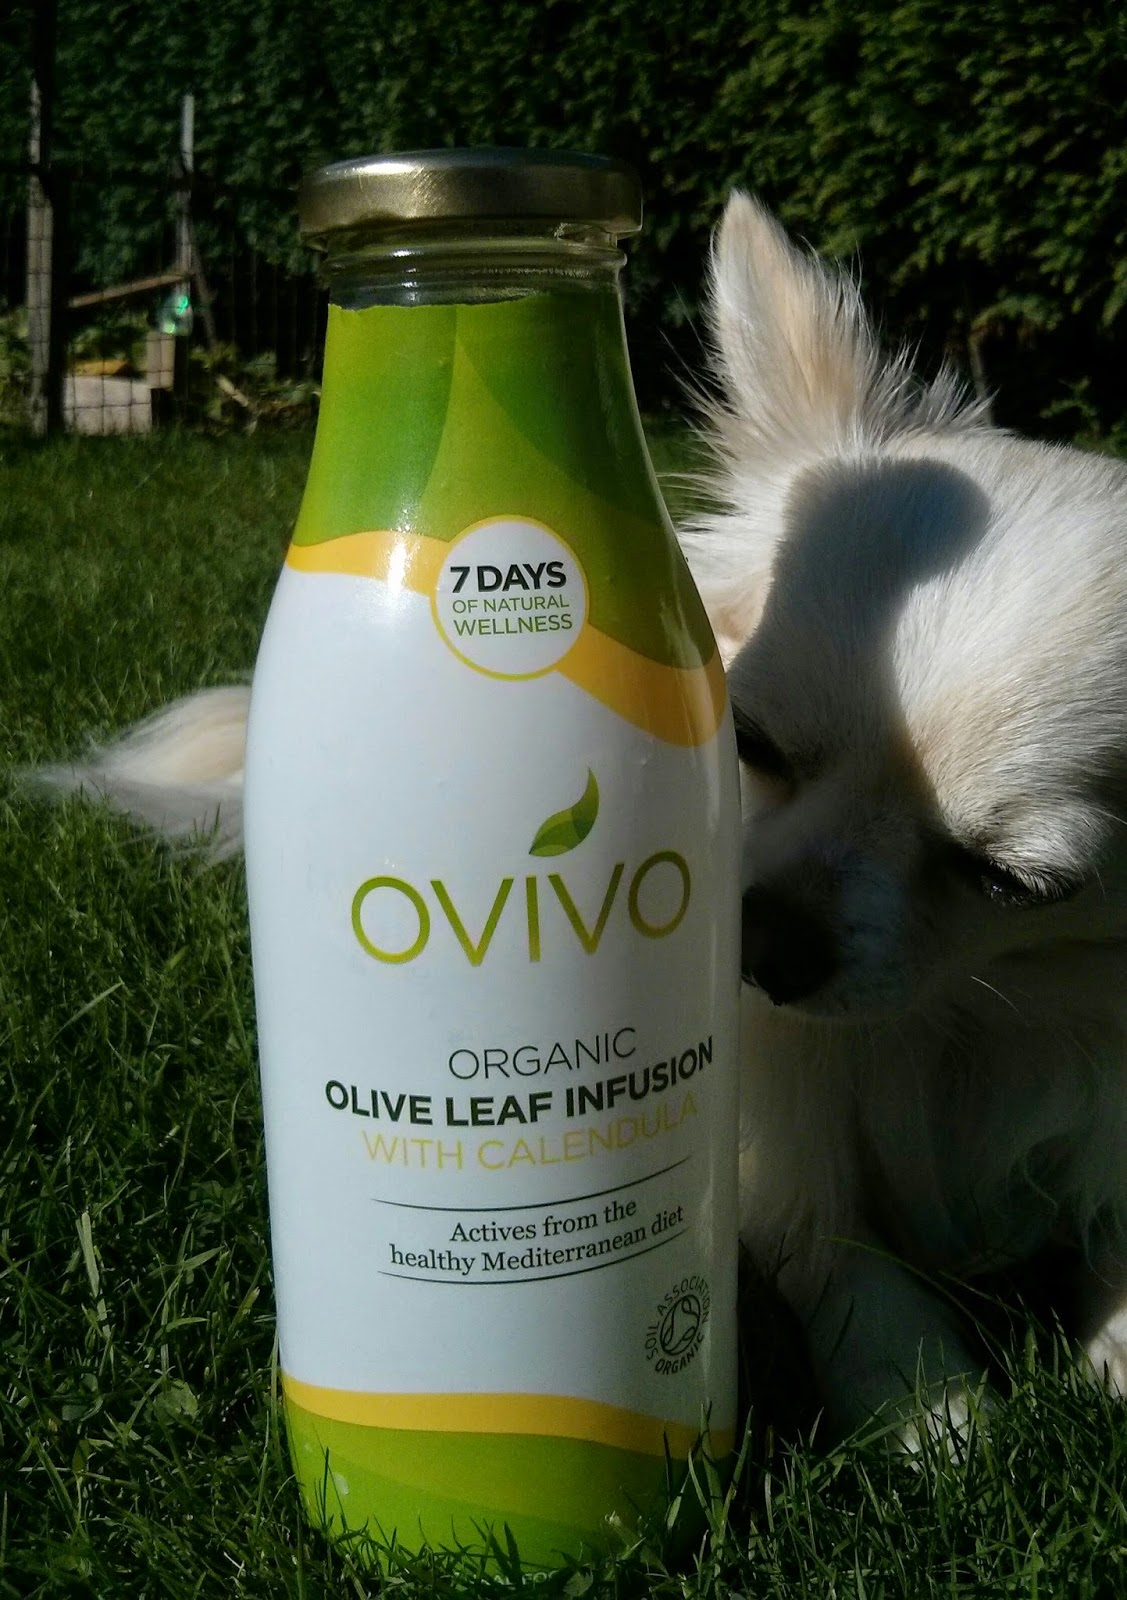 Ovivo Organic Olive leaf Infusion with Calendula* (and Pepe)